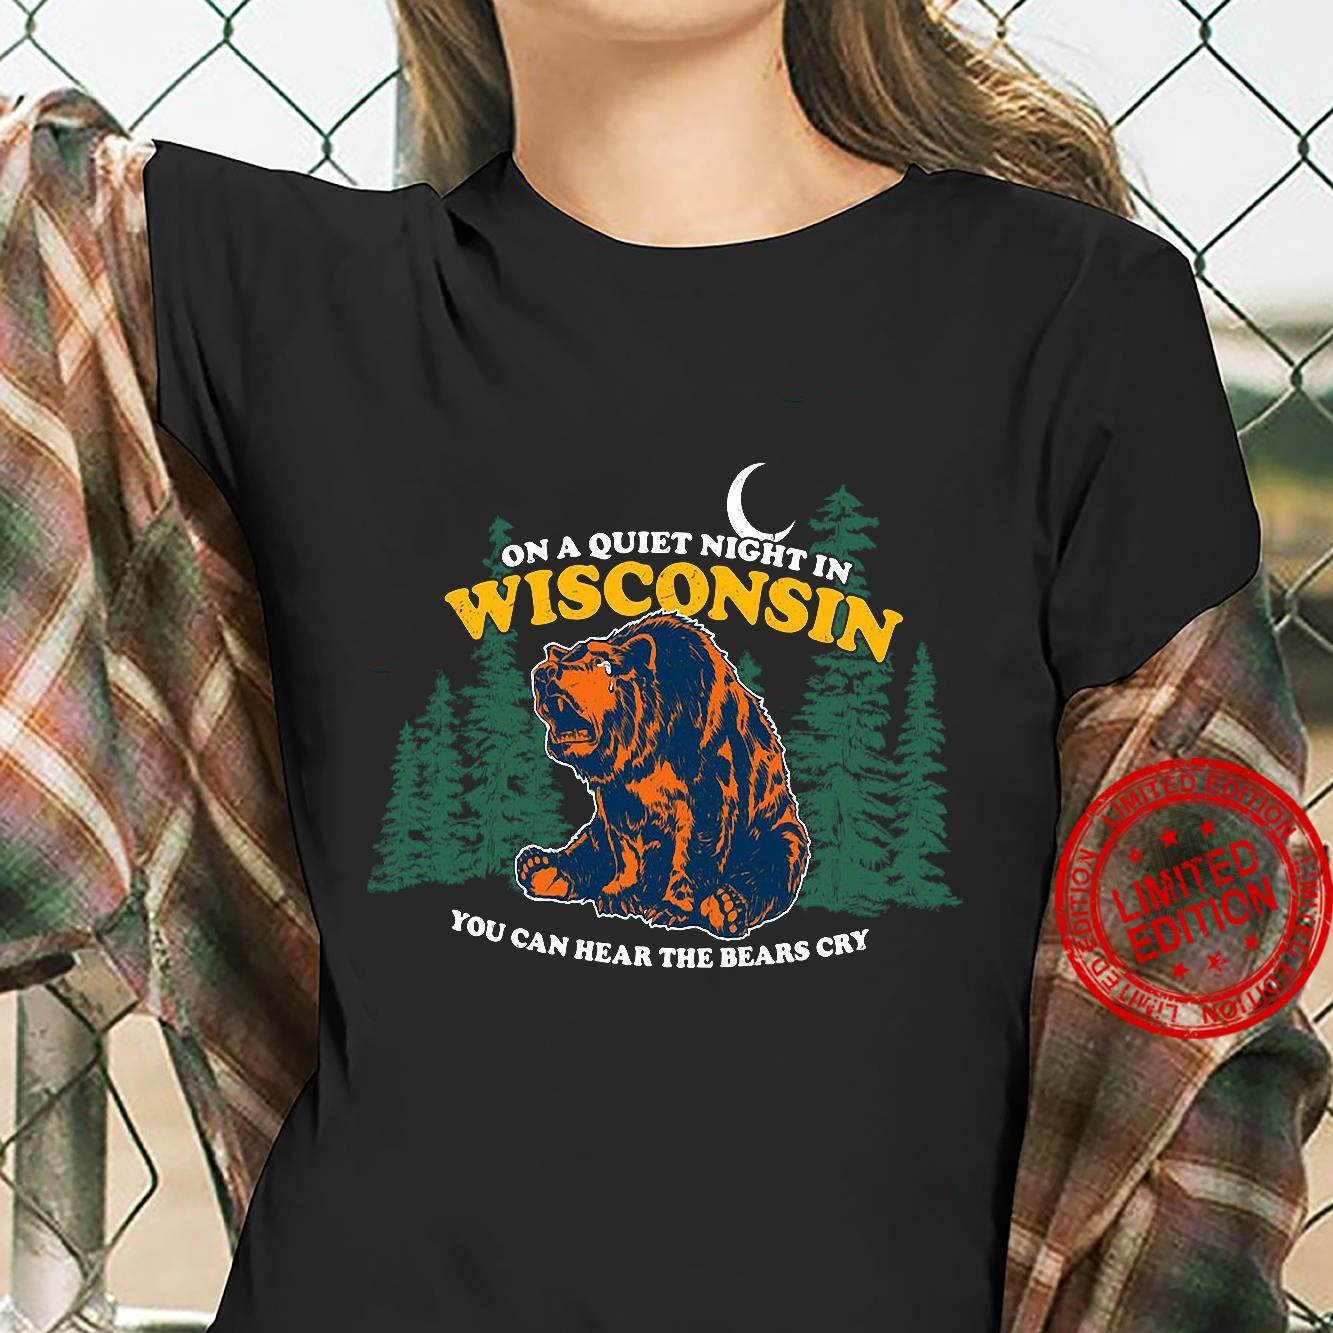 On A Quiet Night In Wisconsin You Can Hear The Bears Cry Men T-Shirt ladies tee